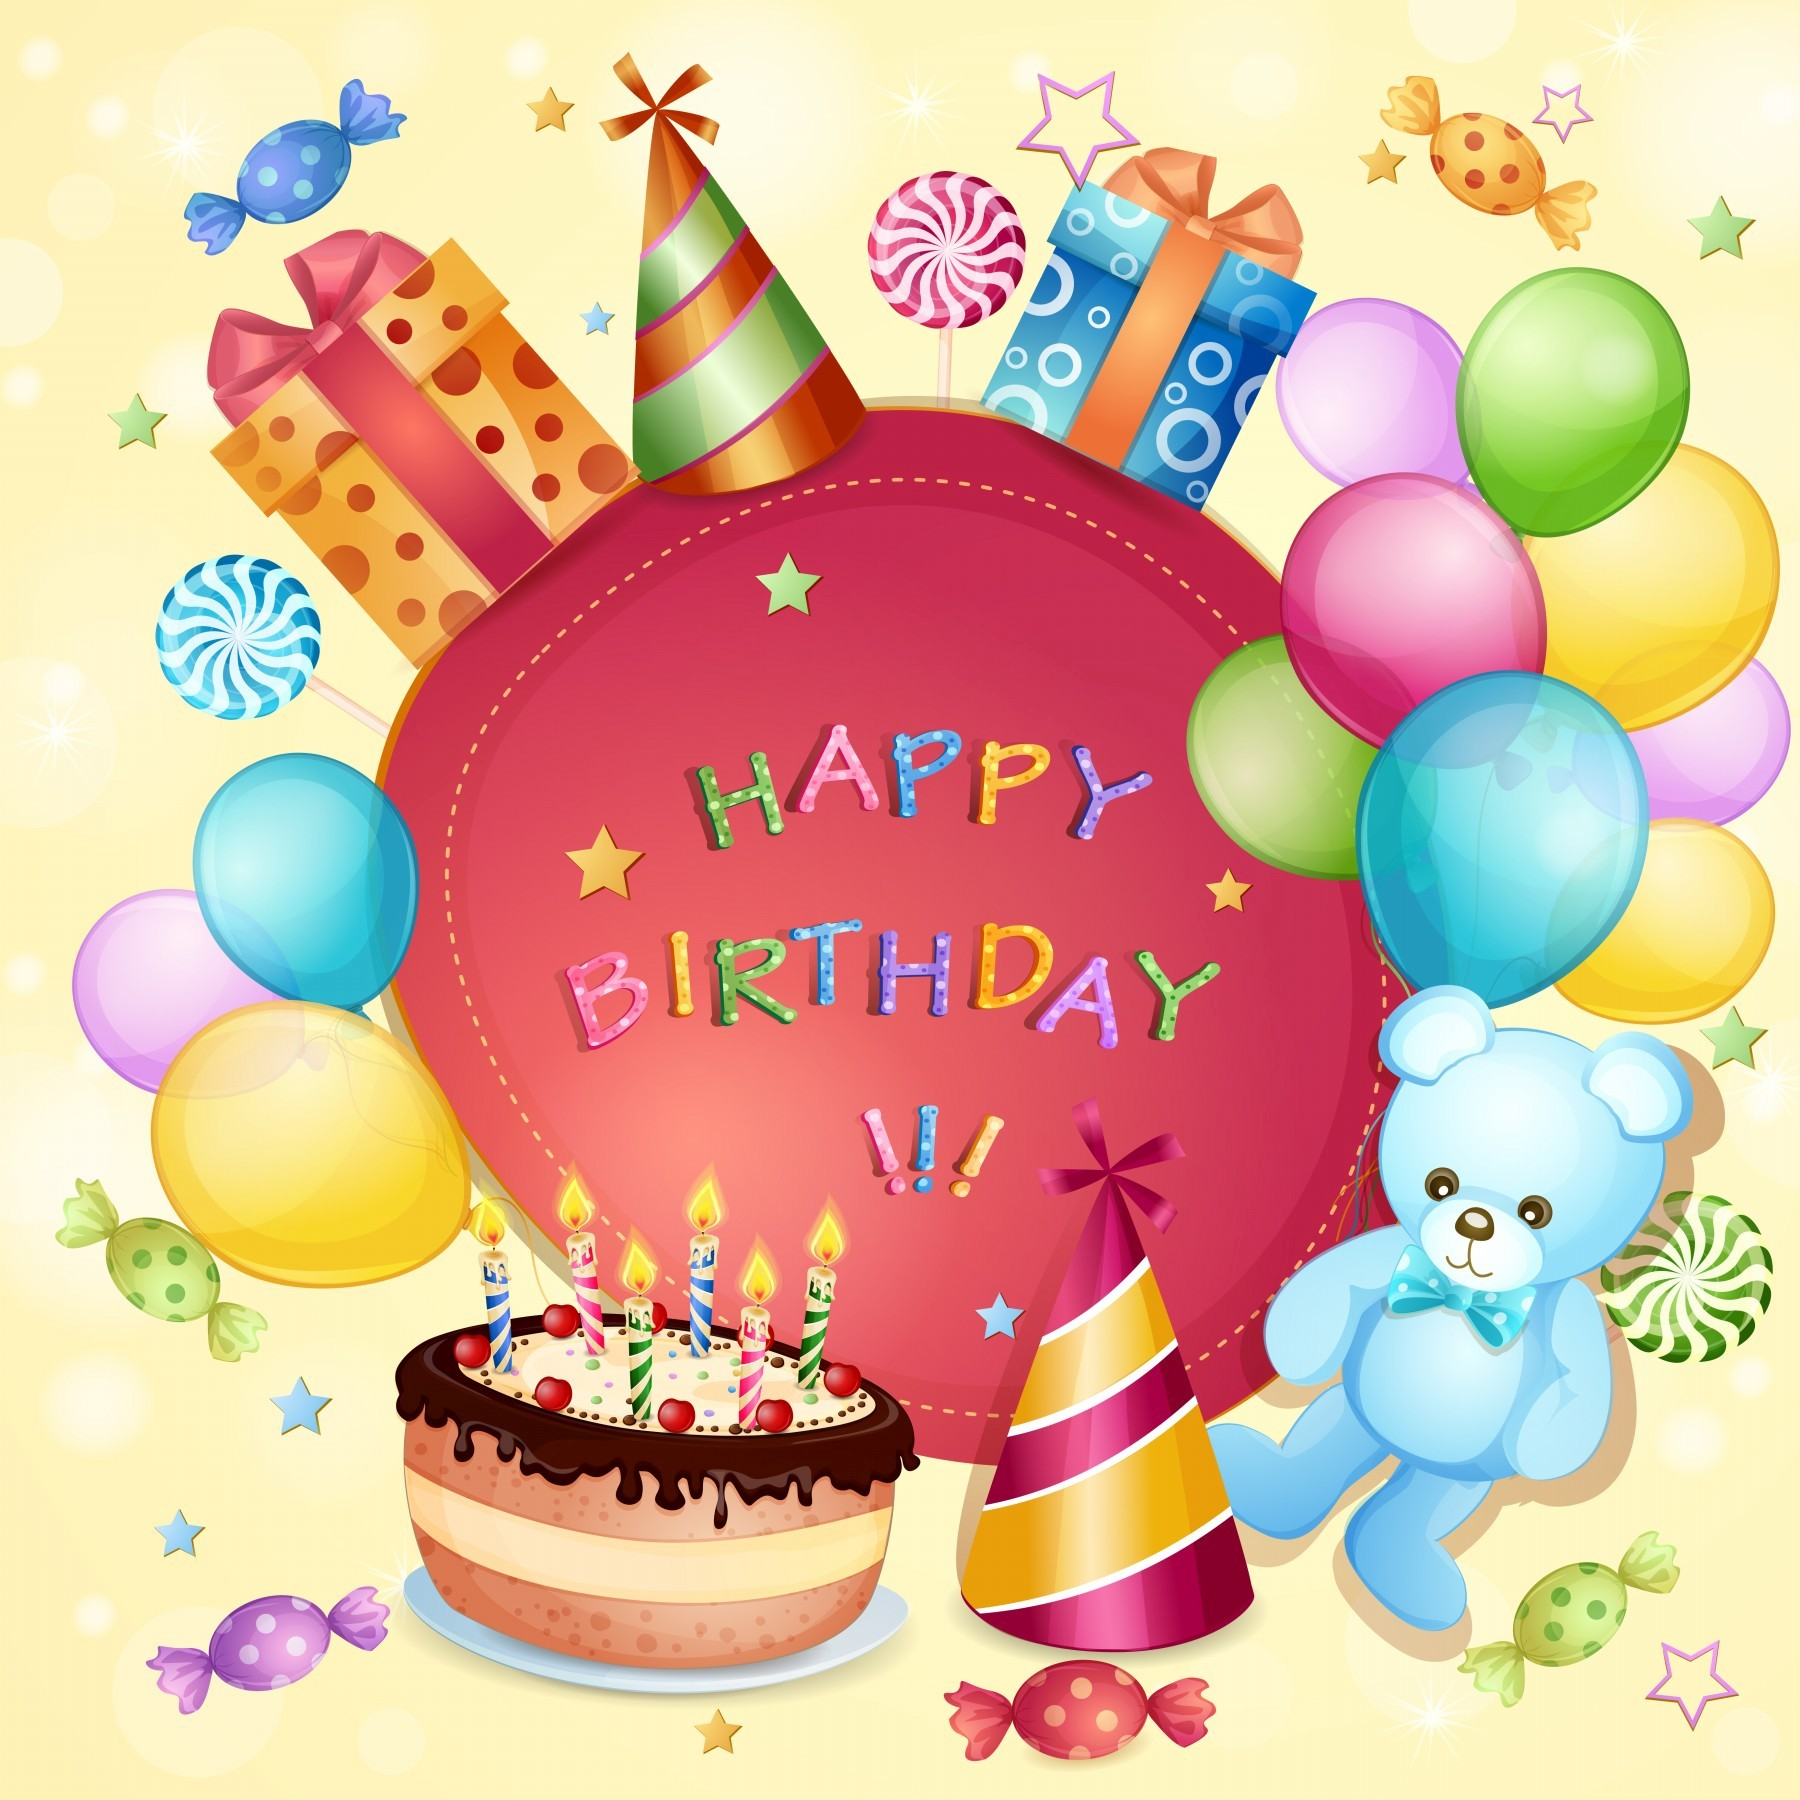 birthday greetings images free download ; free-download-birthday-cards-amazing-birthday-cards-free-sizes-elsoar-pattern-of-free-download-birthday-cards